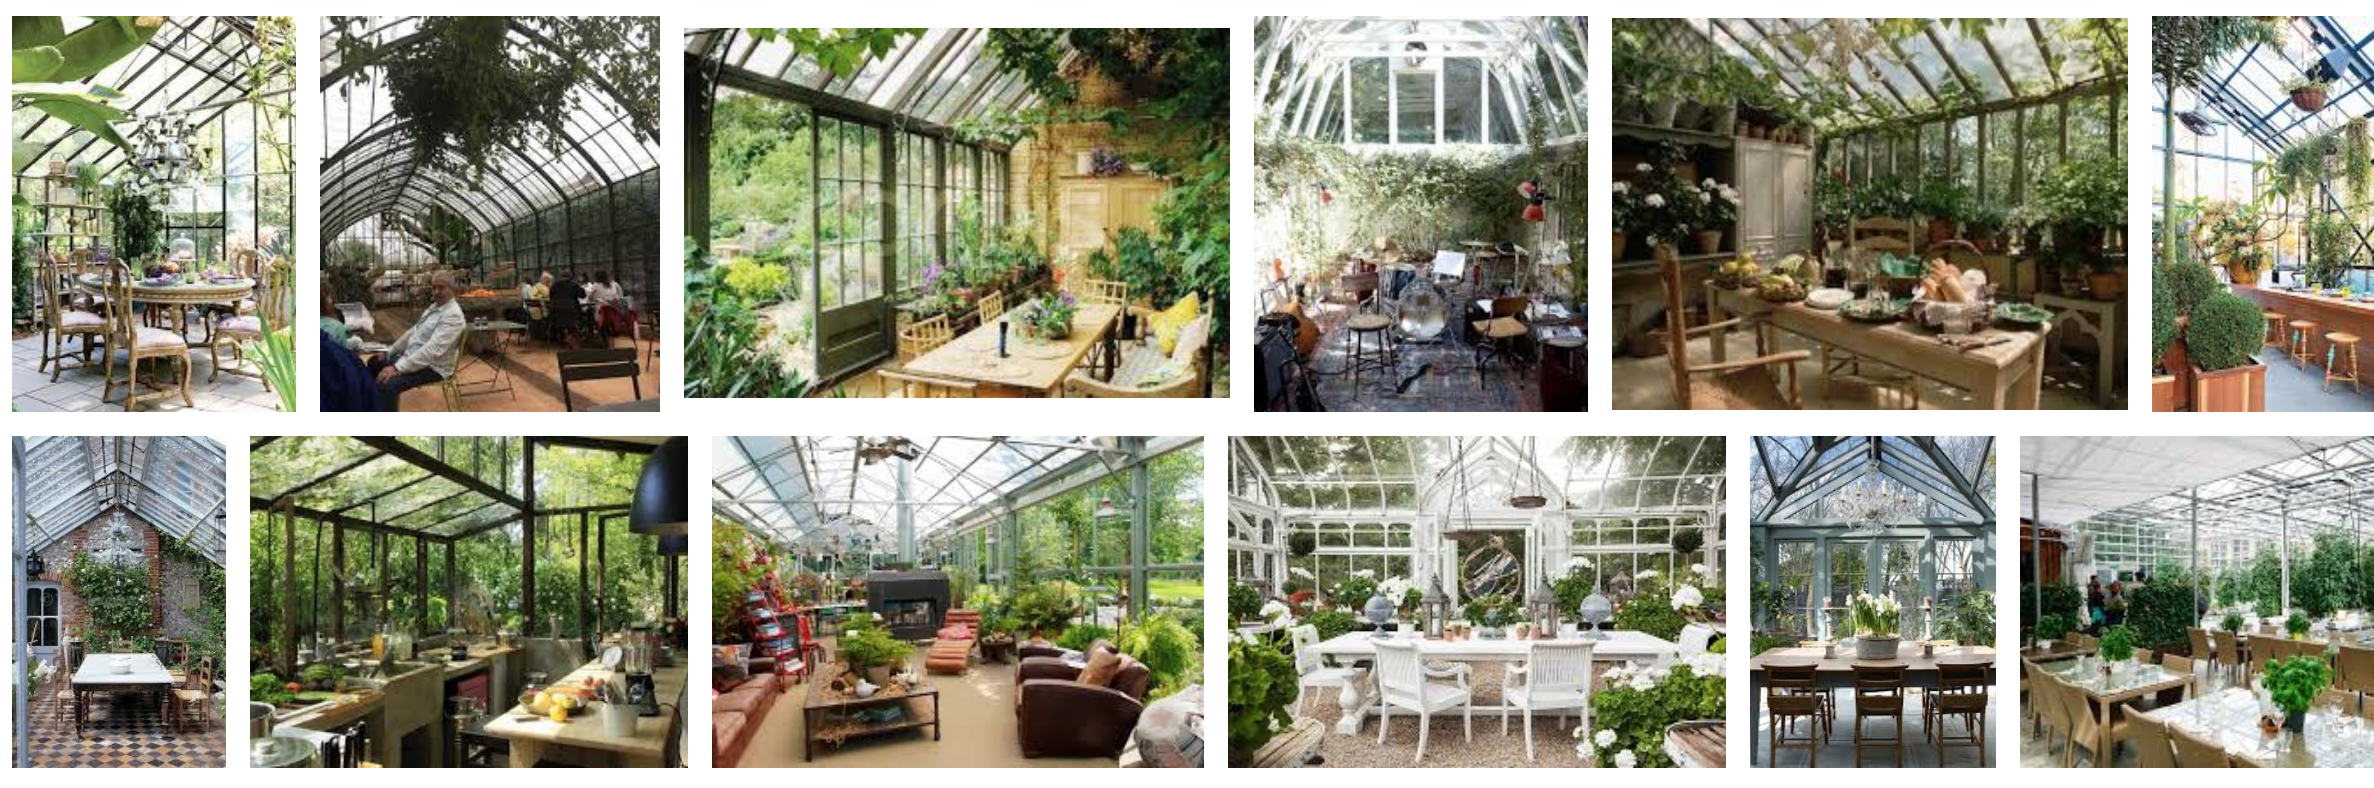 Groovy Sunroom Greenhouse Multi Purpose Dining Creative Workshop Complete Home Design Collection Barbaintelli Responsecom